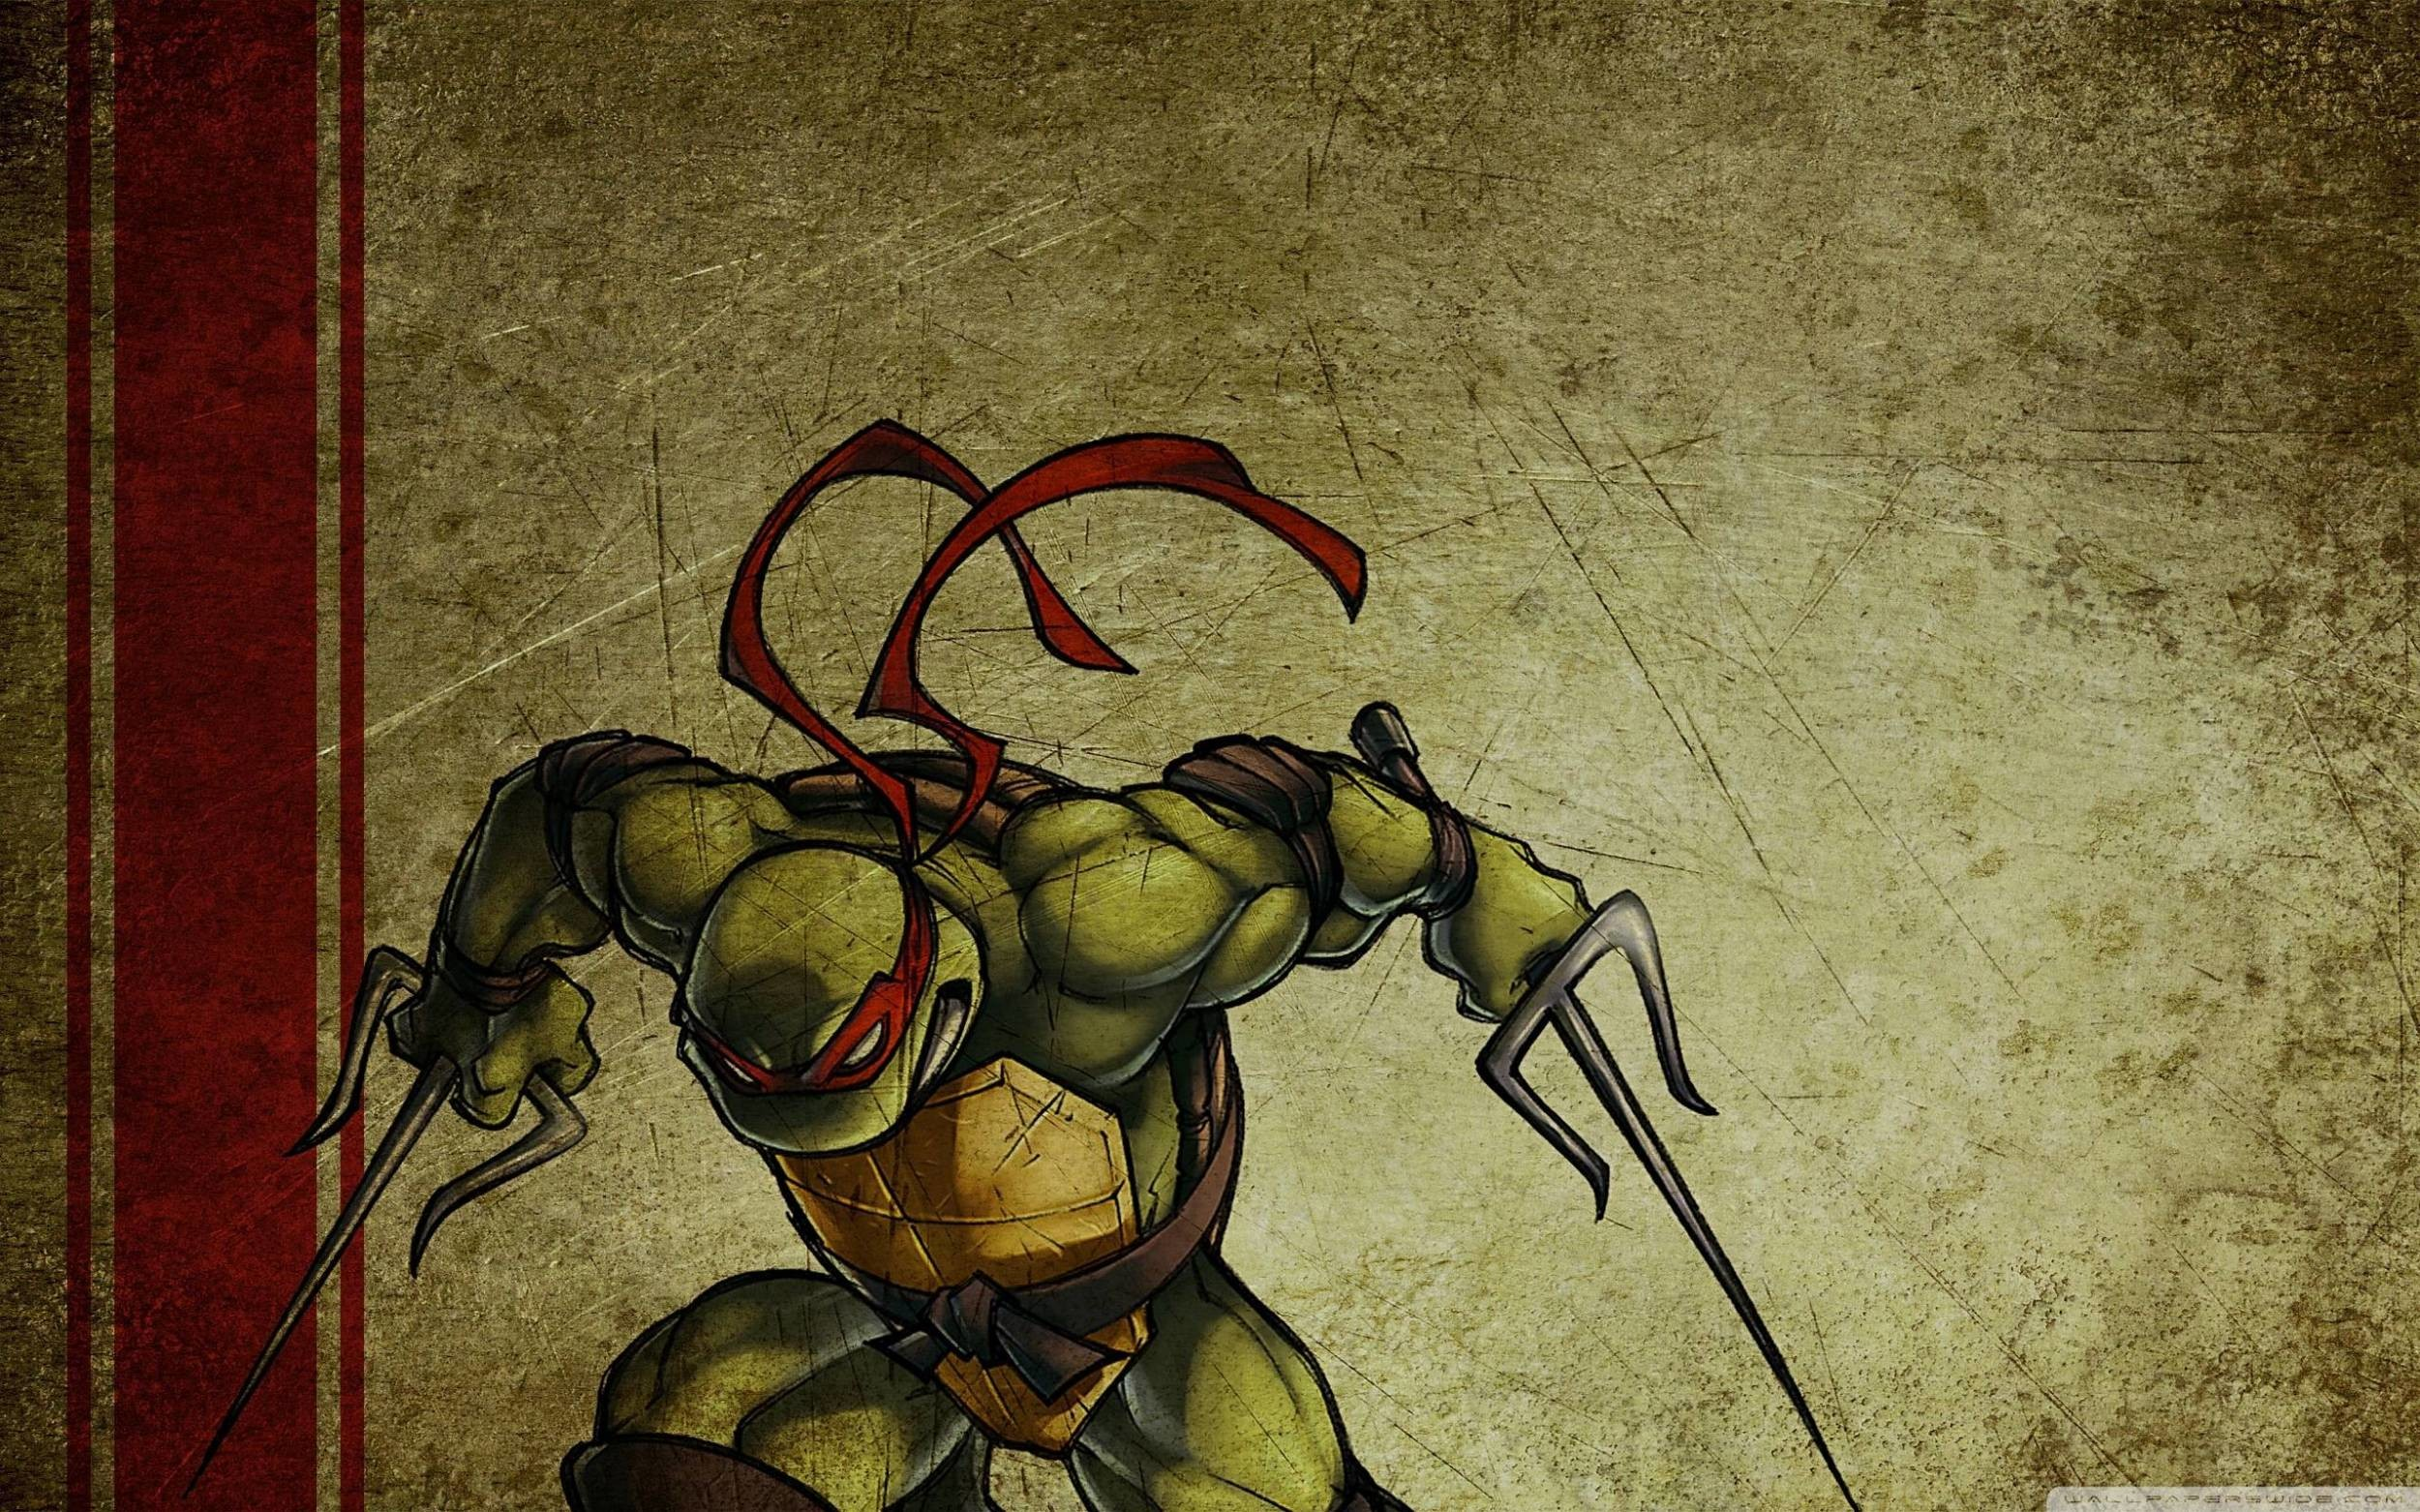 Res: 2500x1562, Teenage Mutant Ninja Turtles HD Backgrounds for PC for mobile and desktop